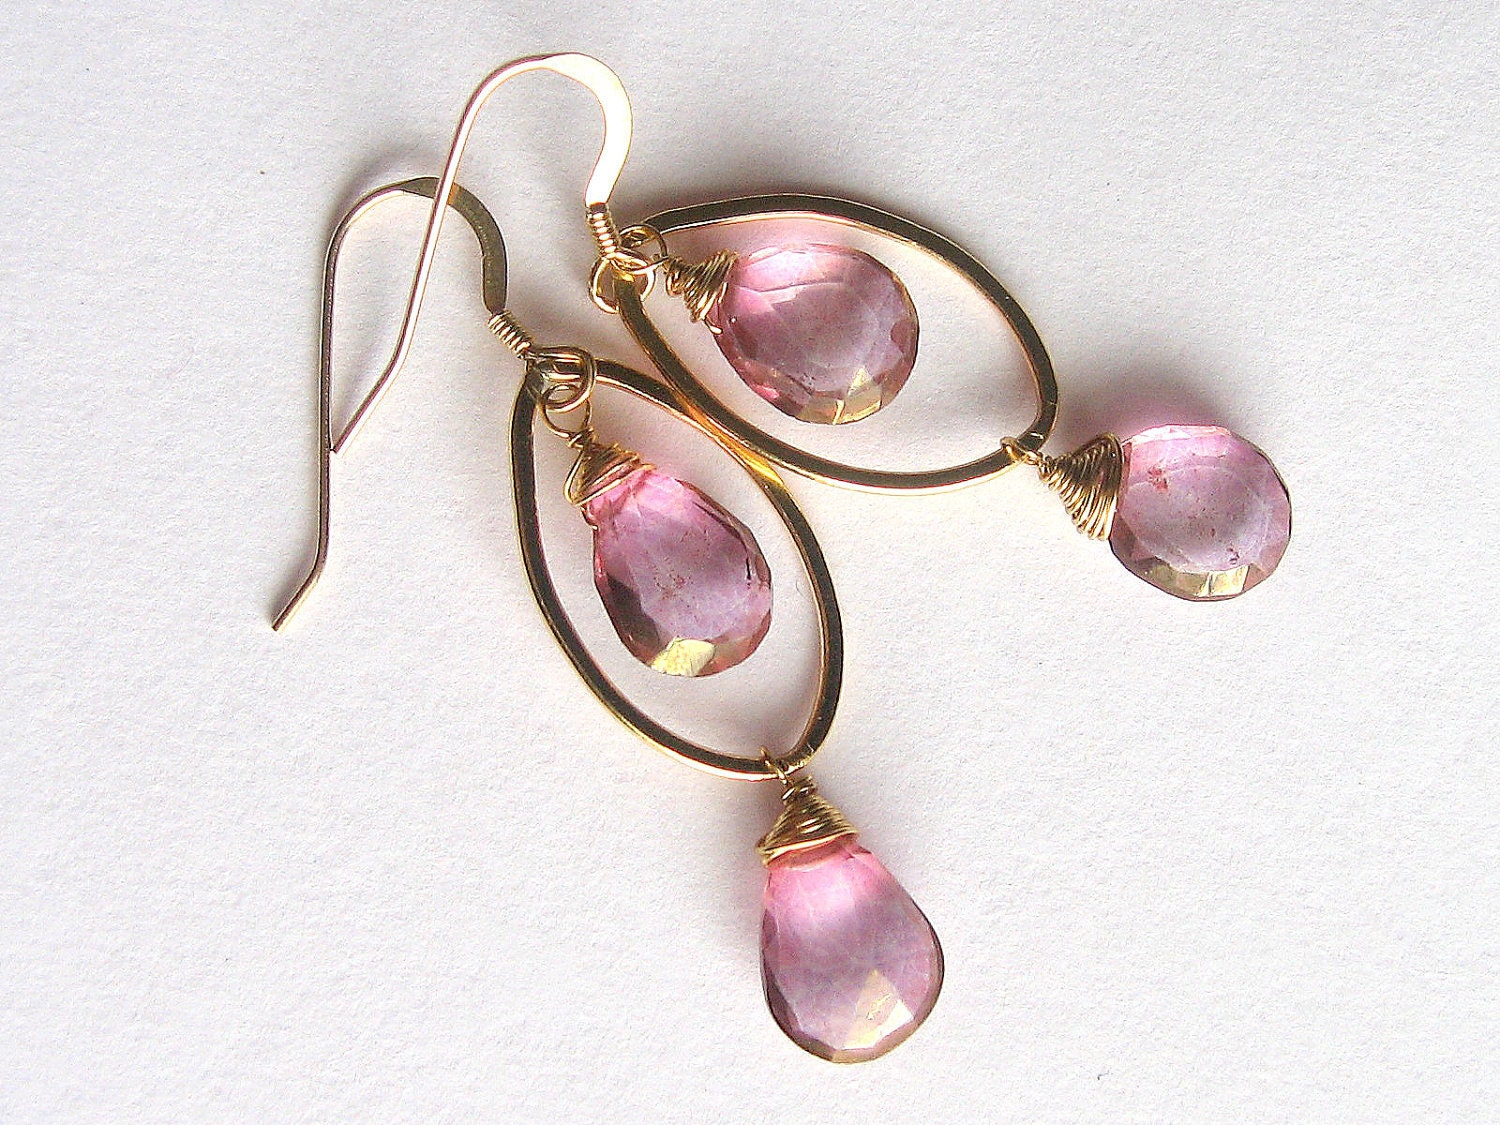 Pink Quartz Teardrop Earrings, Gold Fill, Mystic Quartz